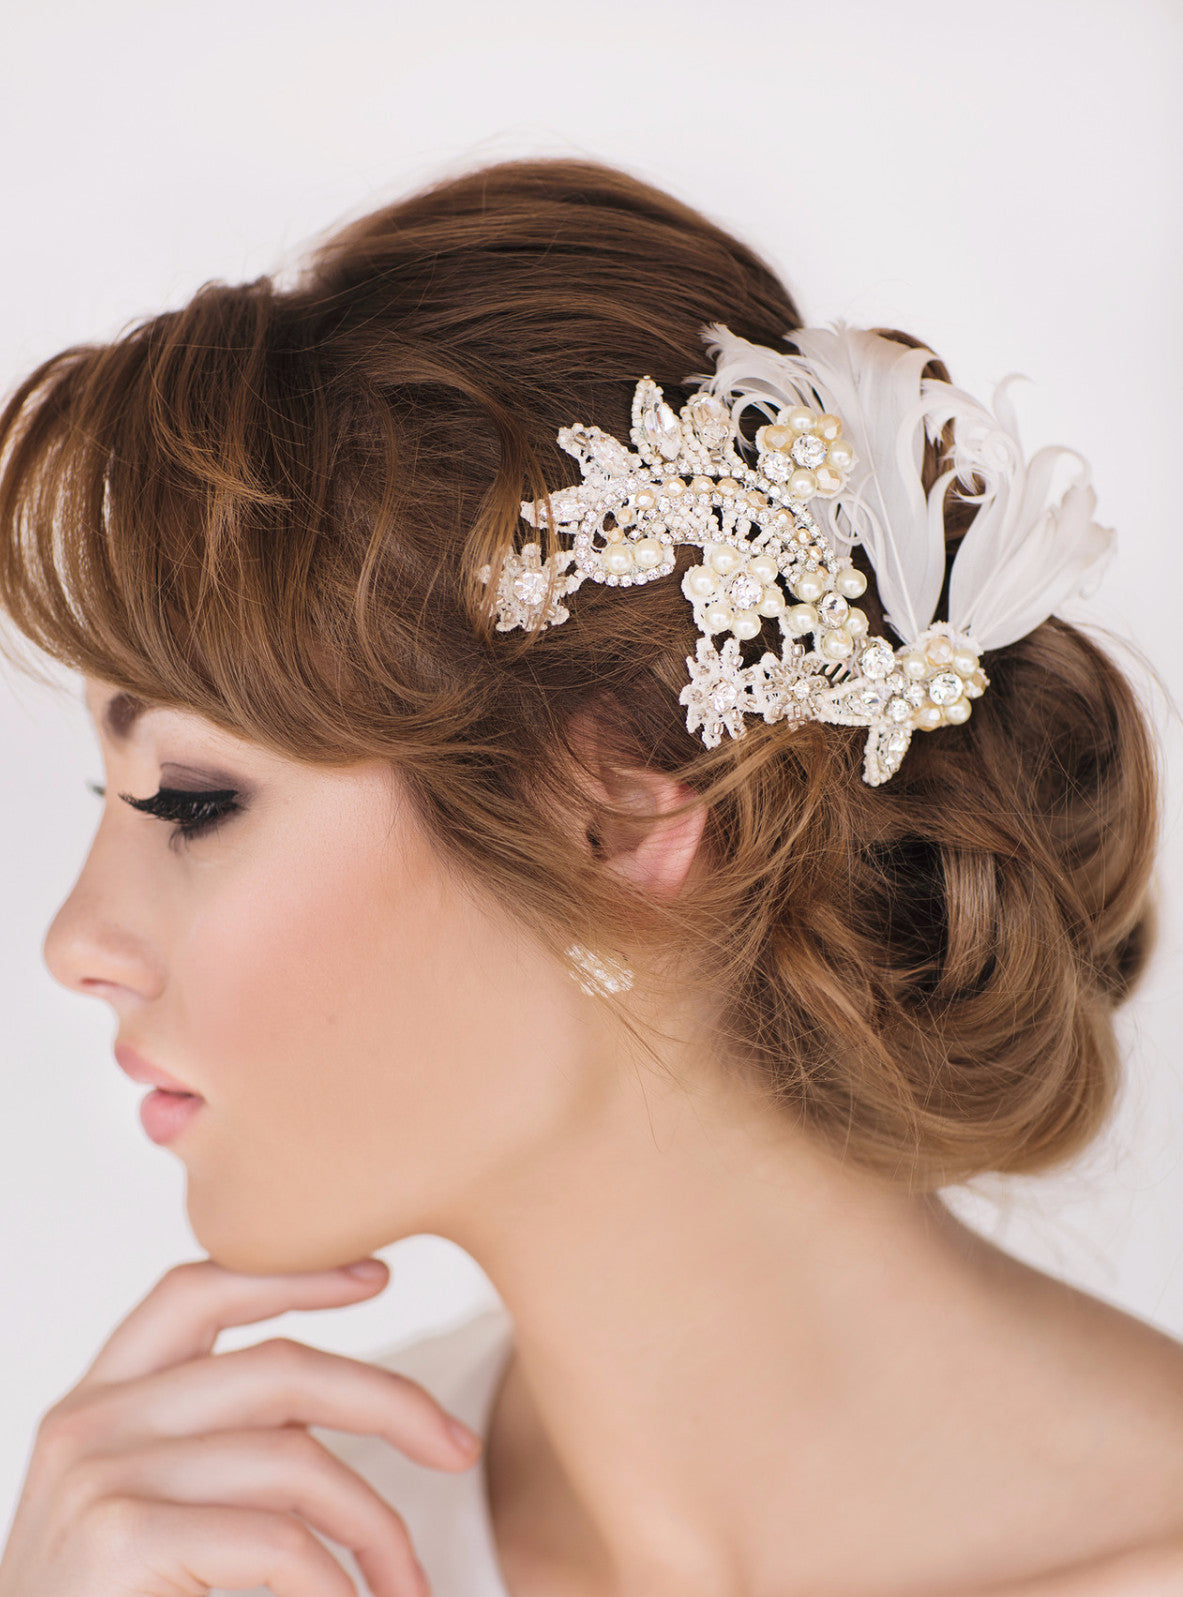 Scarlette Bridal Headpiece - Perle Jewellery & Makeup  - 1